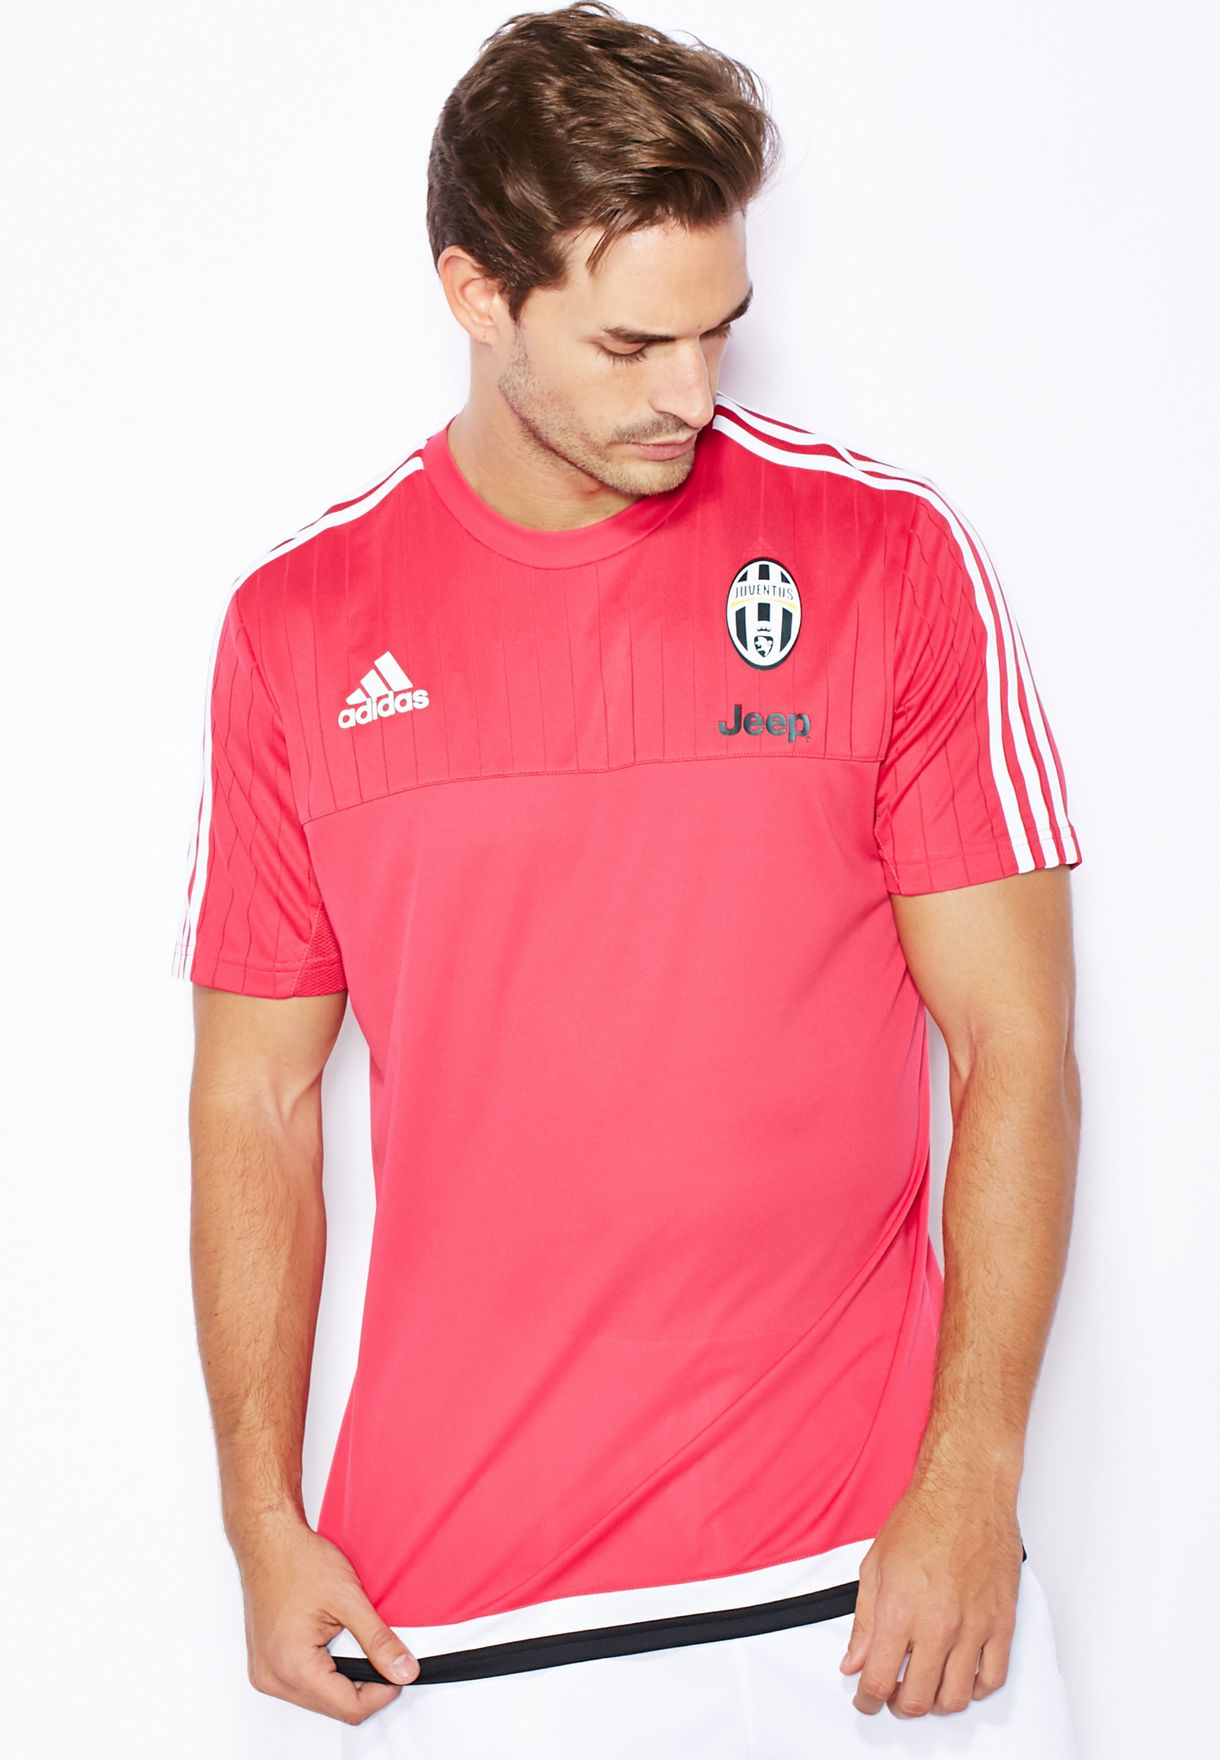 4e067a71c Shop adidas pink Juve Training Top S19397 for Men in UAE - AD476AT63PKE